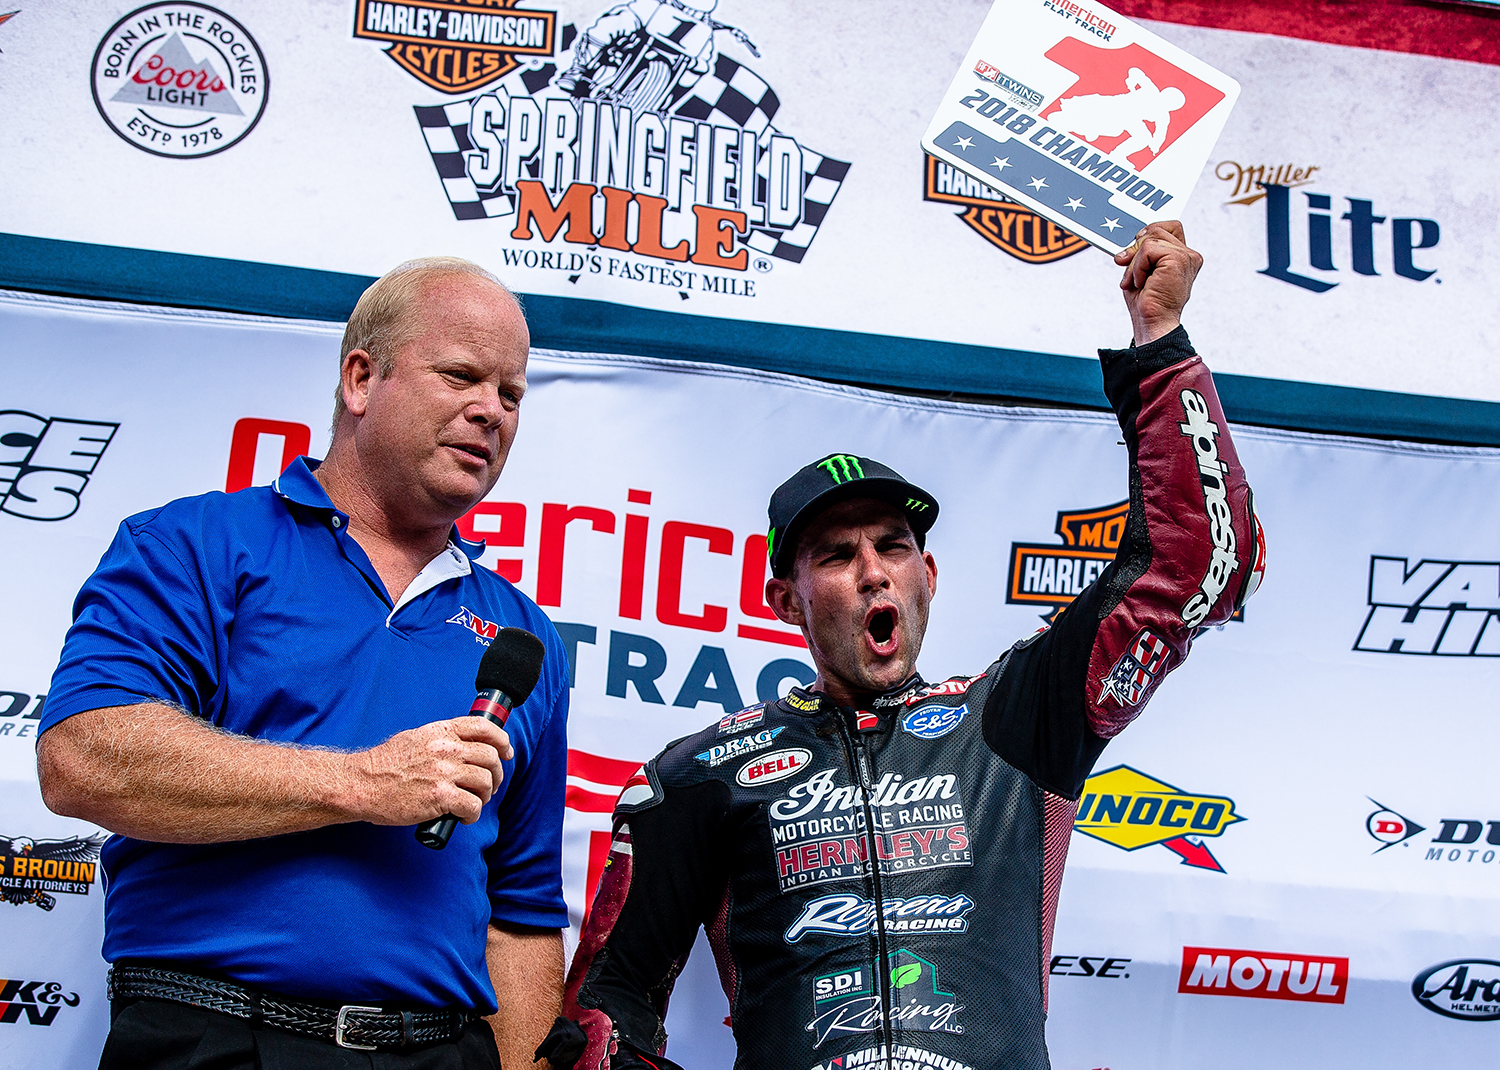 Jared Mees celebrates clinching the Grand National Championship title for the season by finishing second during the American Flat Track Springfield Mile II at the Illinois State Fairgrounds, Sunday, Sept. 2, 2018, in Springfield, Ill. [Justin L. Fowler/The State Journal-Register]